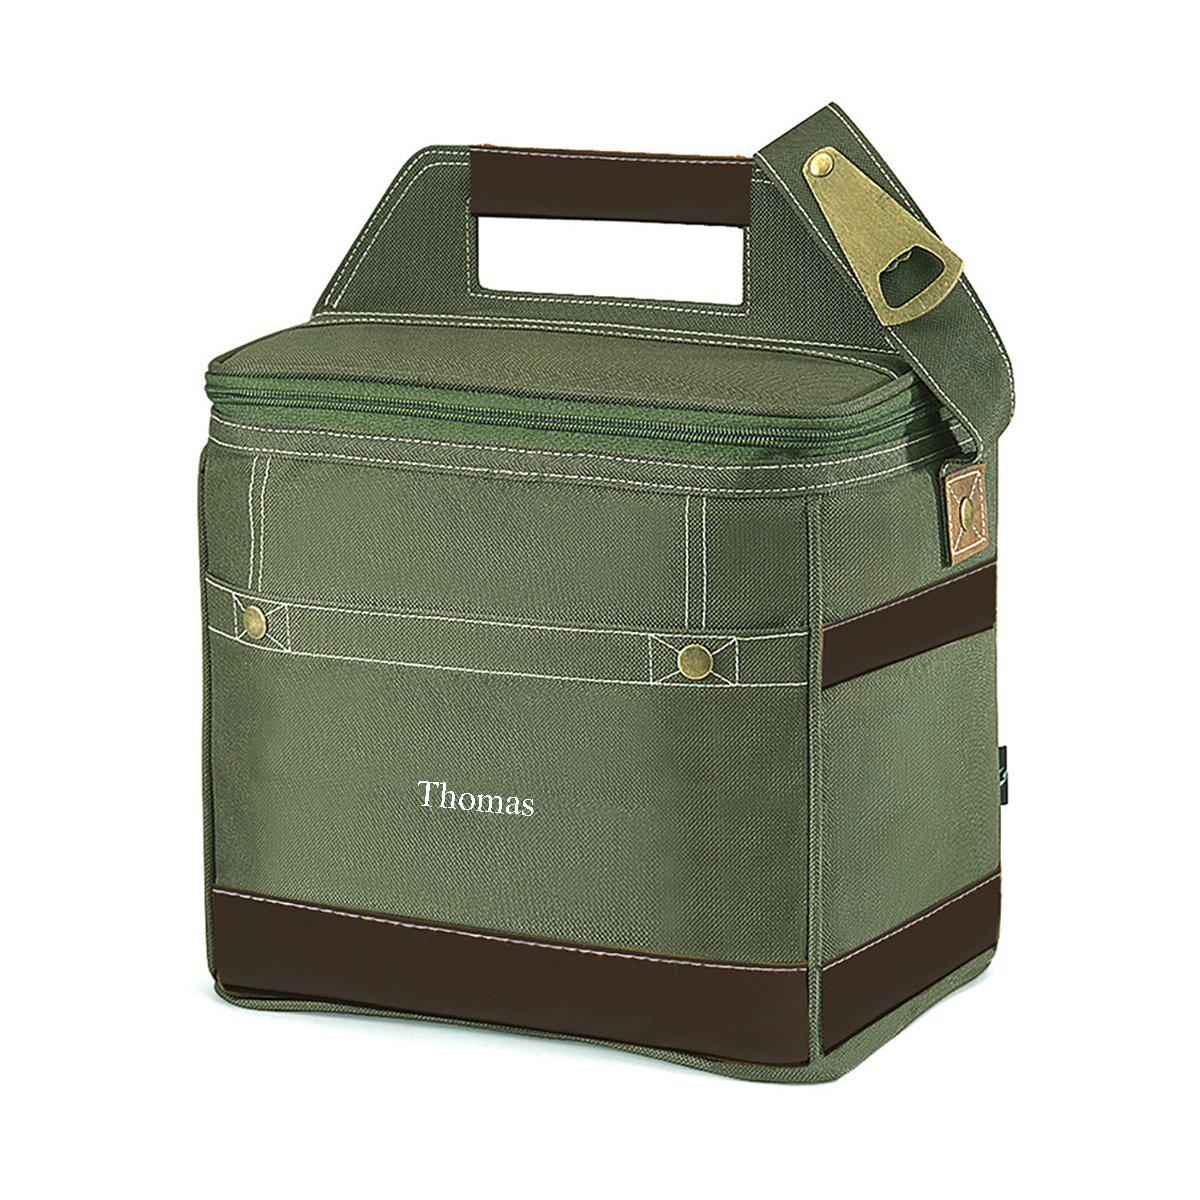 Personalized Insulated Trail Cooler -  Holds 12 Pack